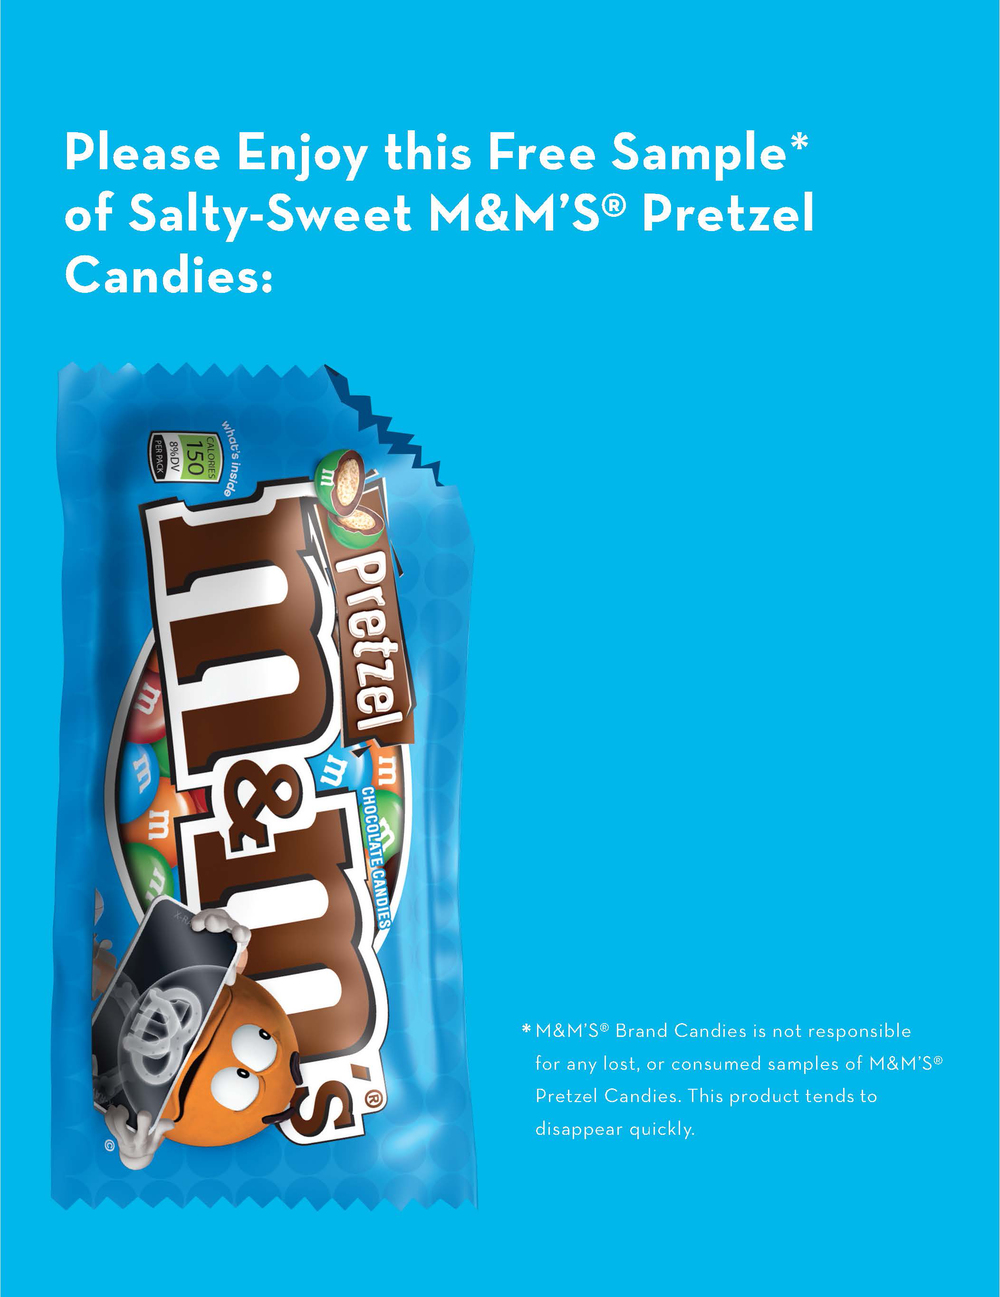 An M&M's Pretzel bag, emptied of its contents, was attached to the ad.